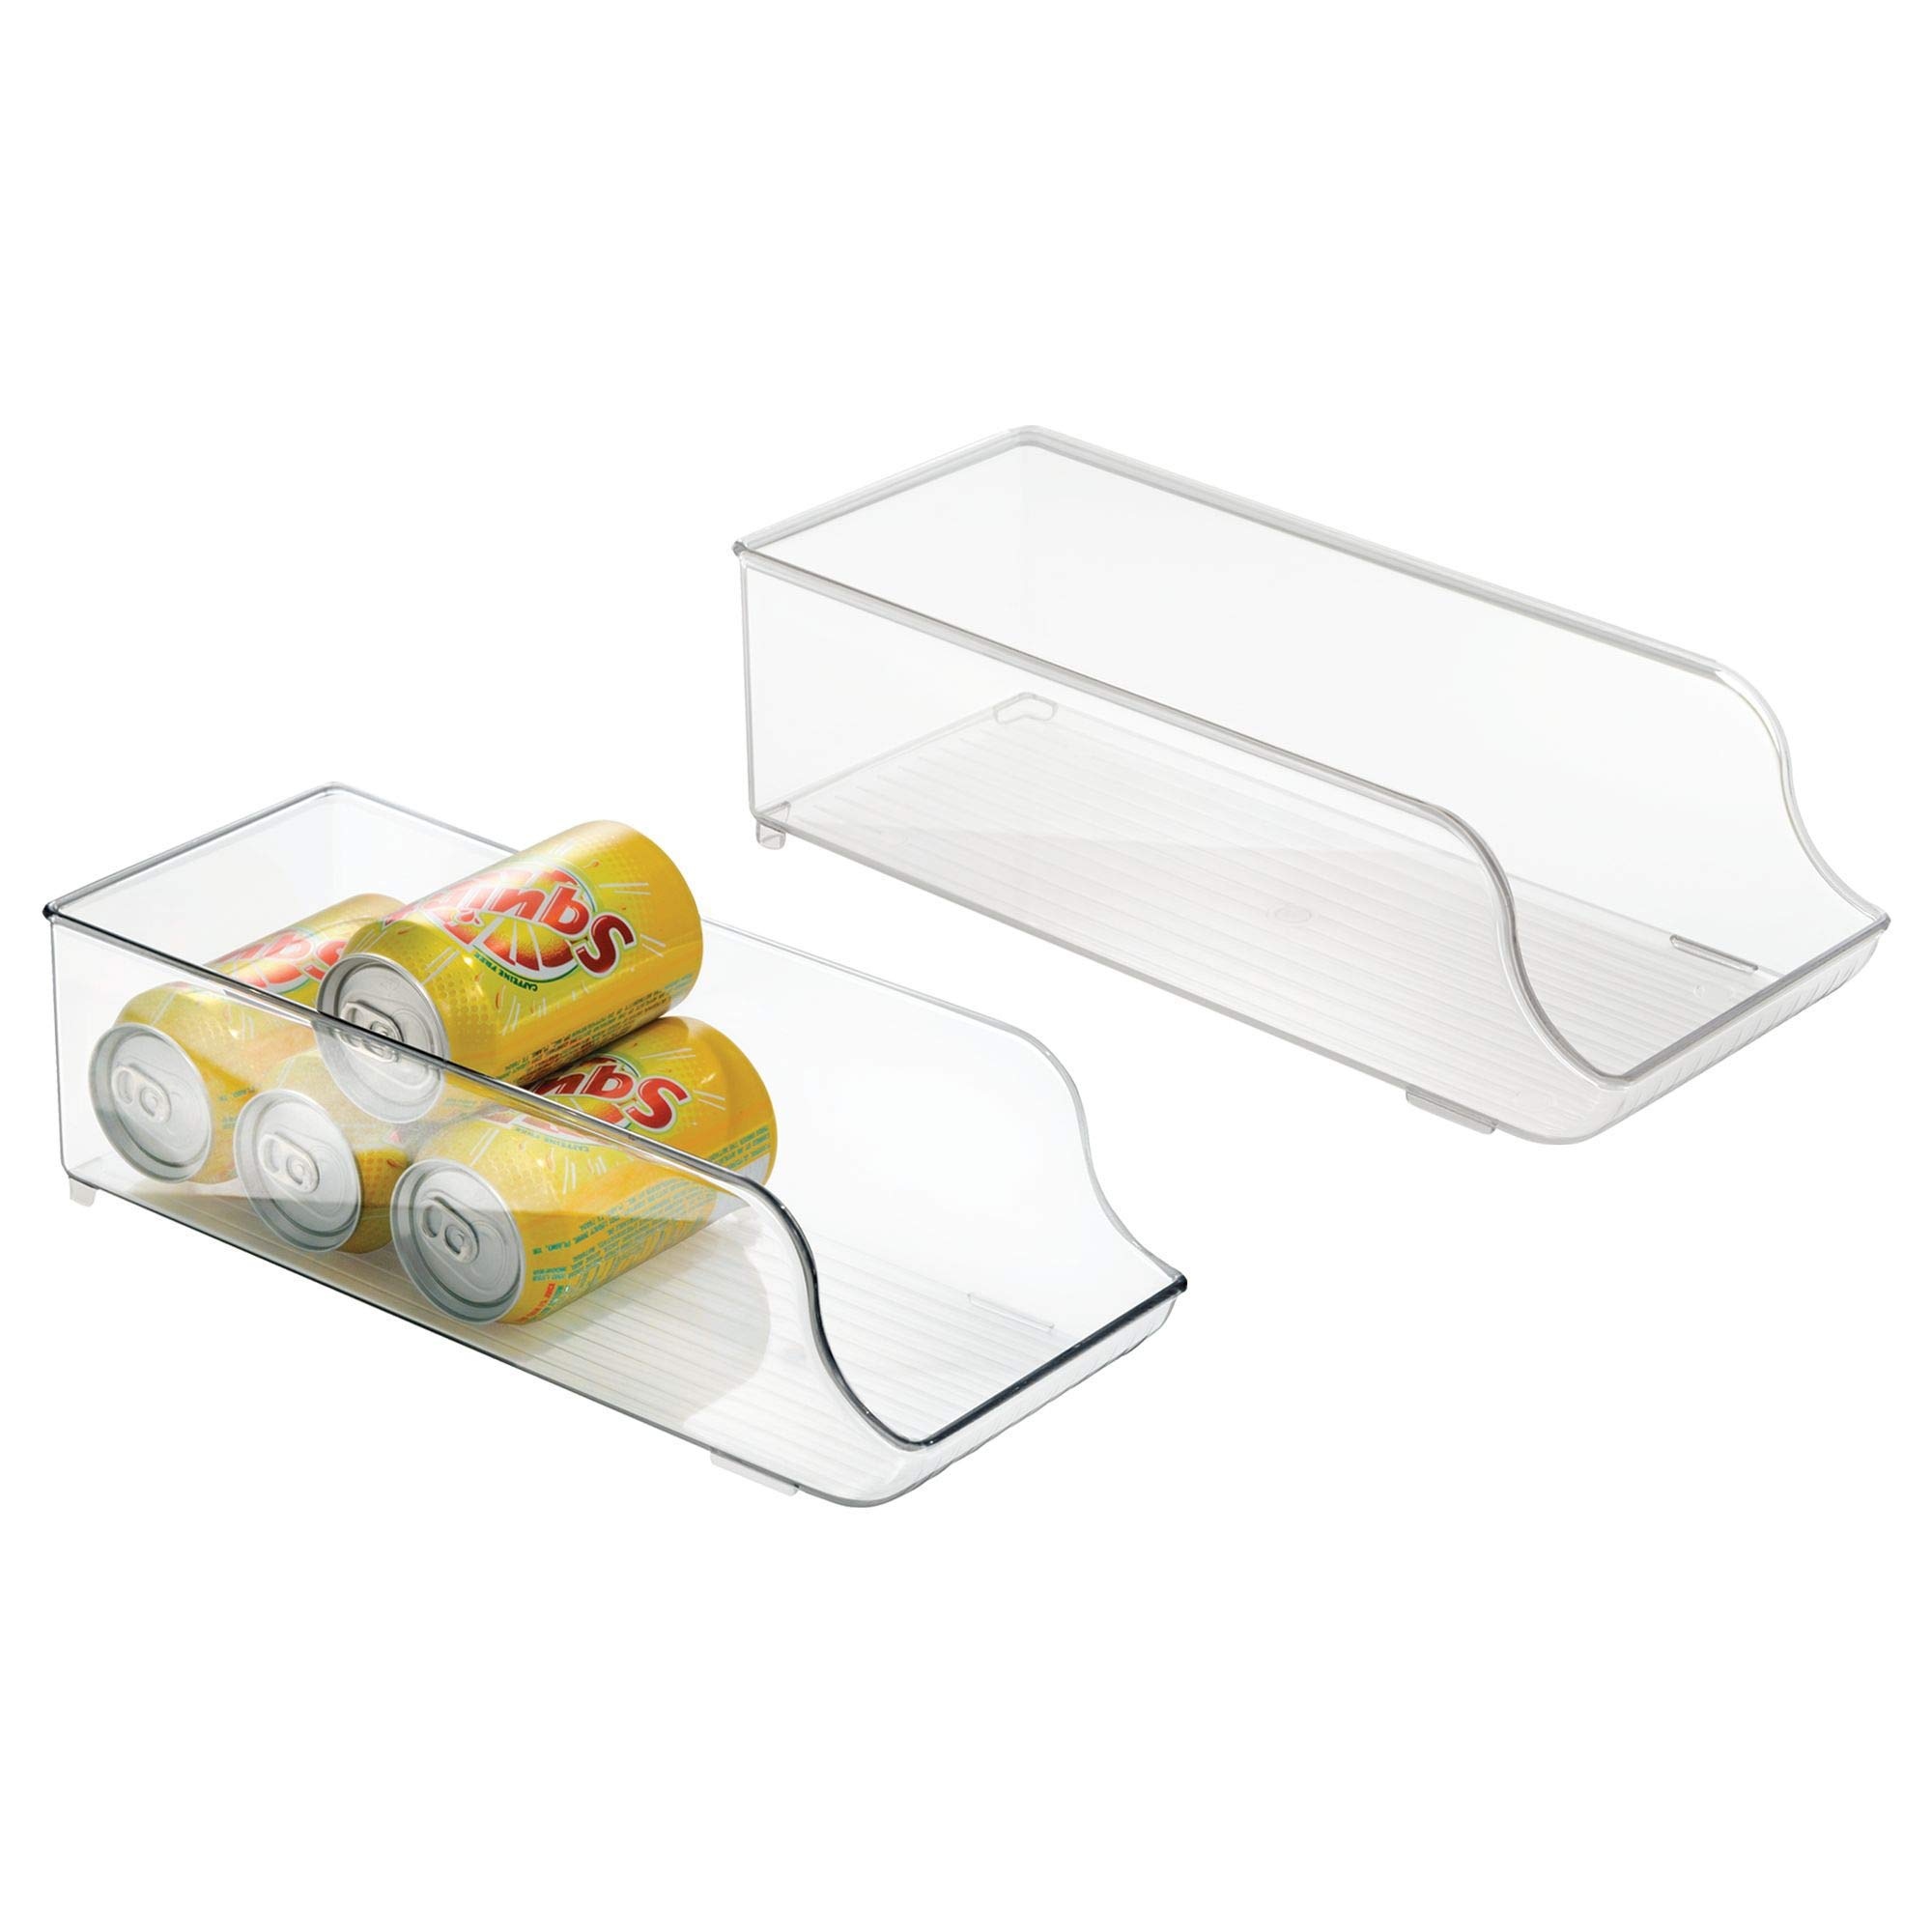 iDesign Fridge Binz Soda and Food Can Dispenser Rack Organizer for Refrigerator, Freezer, Pantry or Cabinet - Pack of 2, Clear